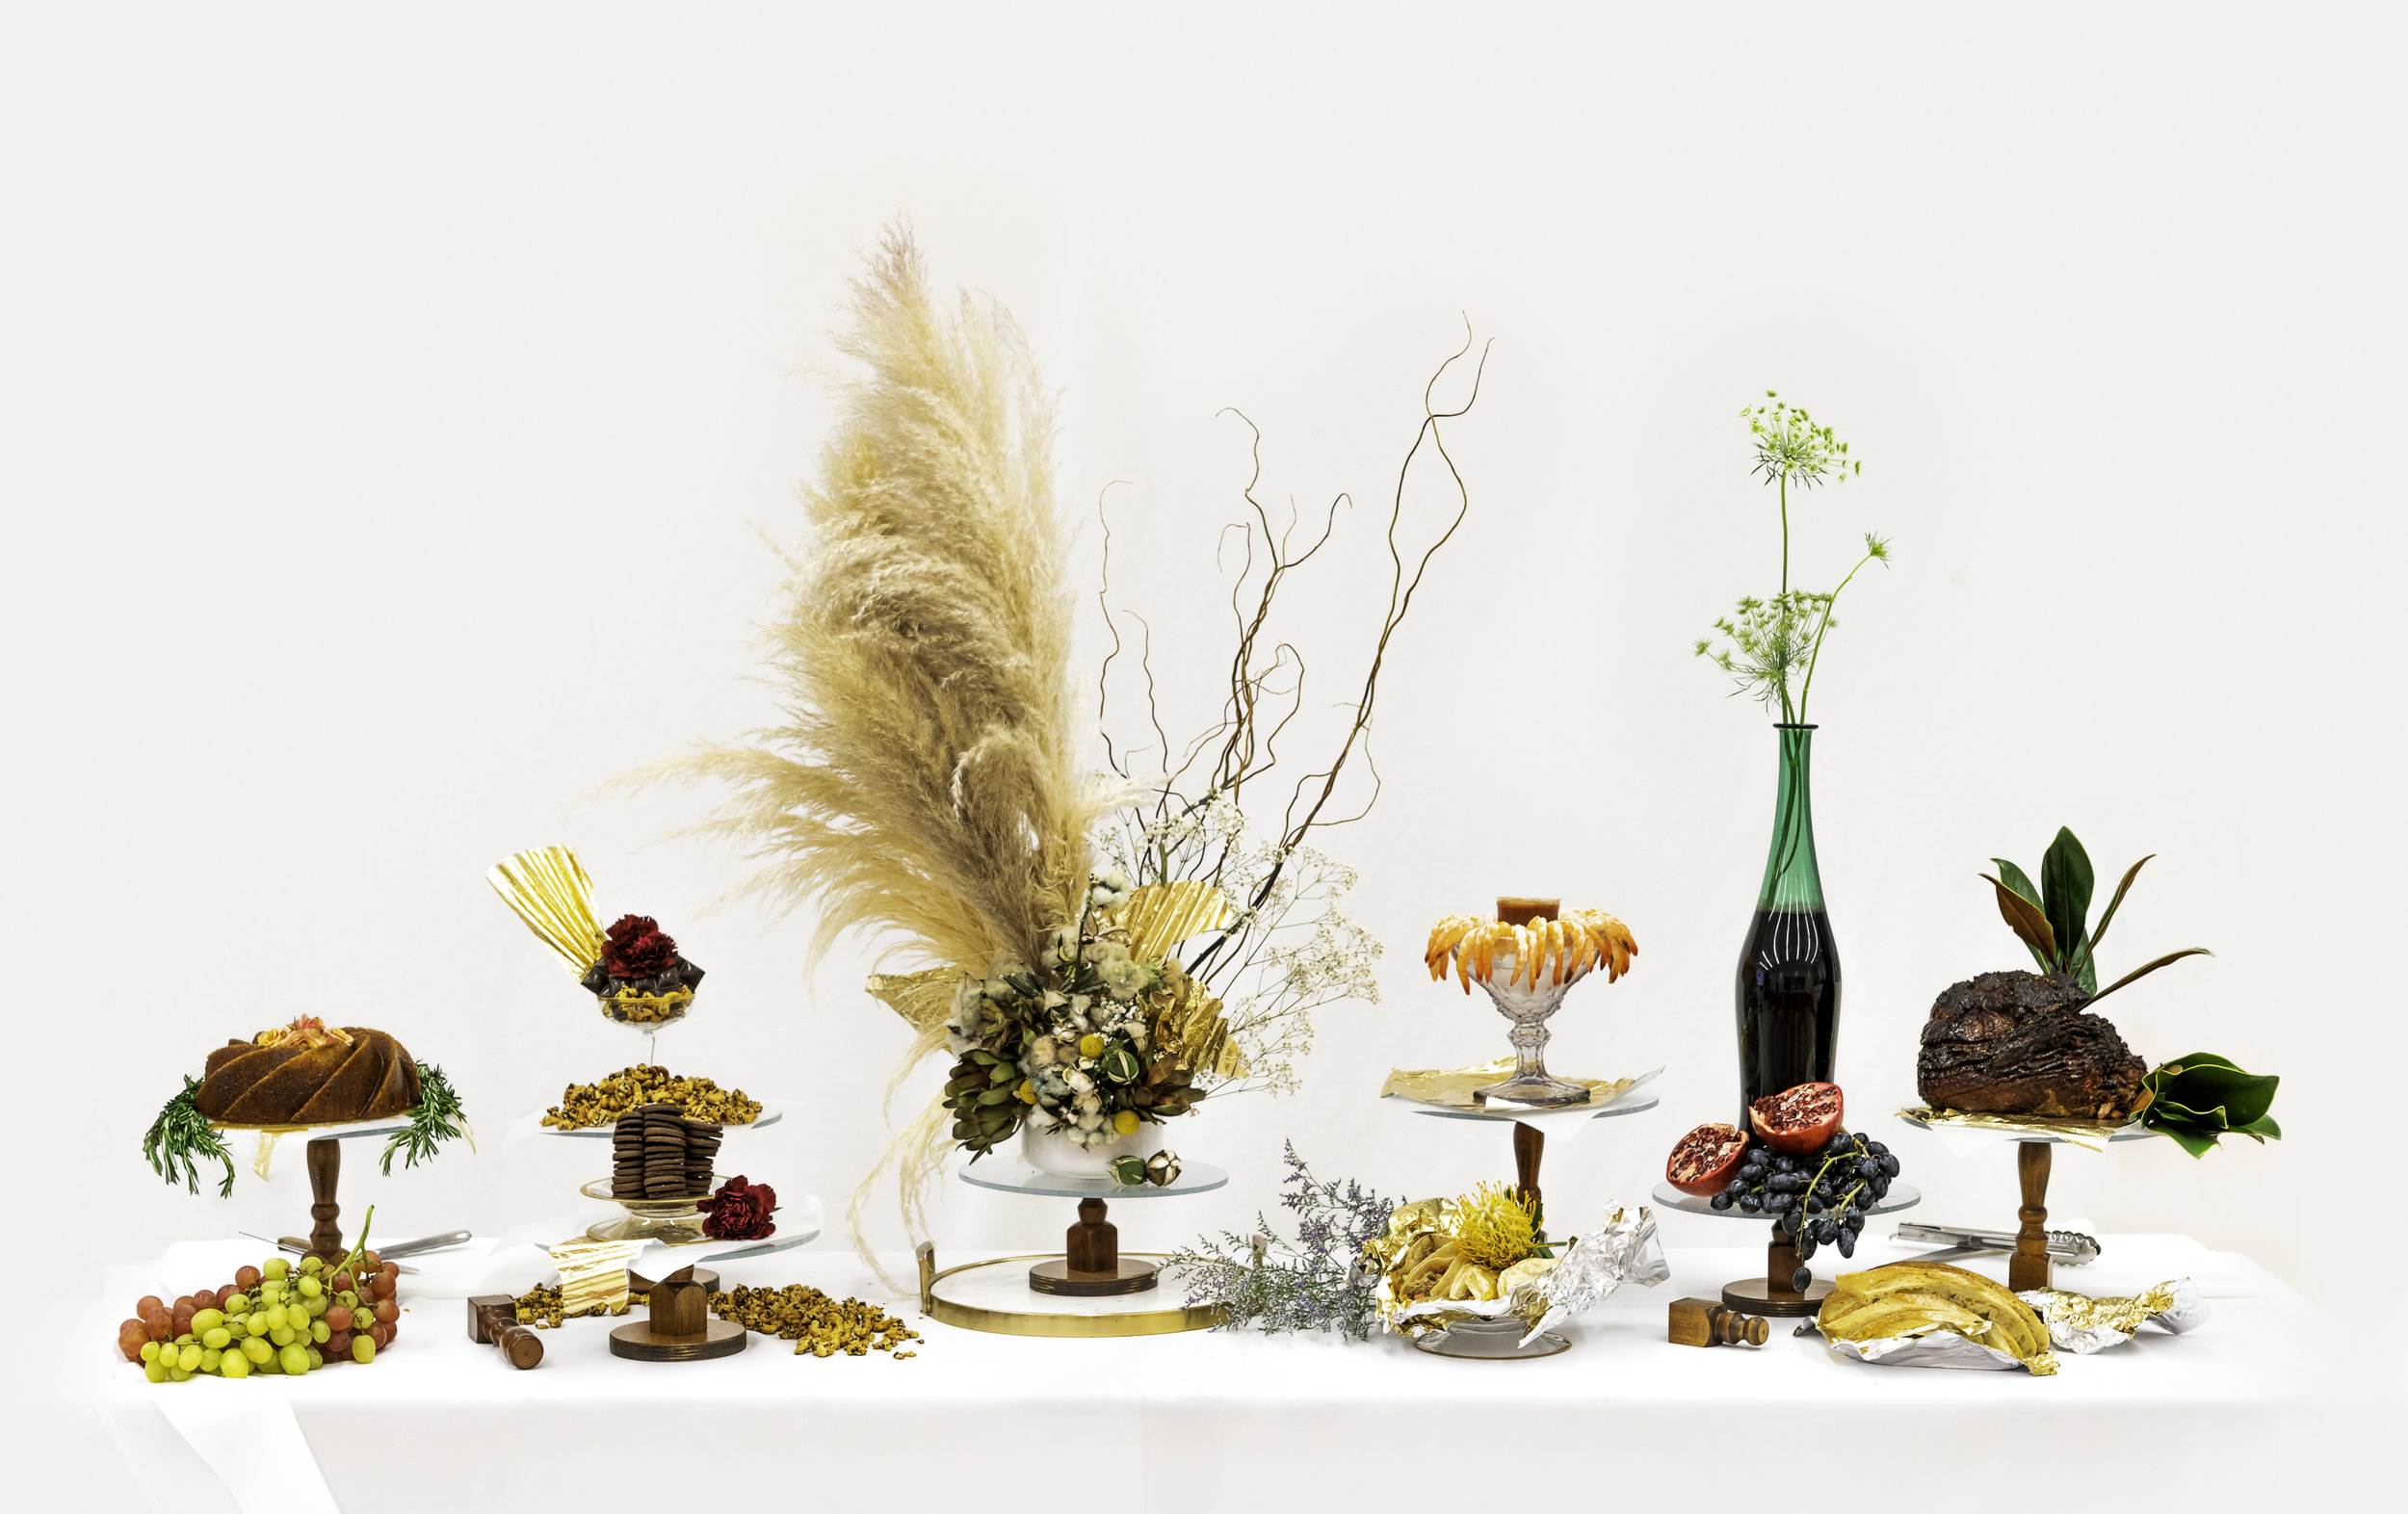 Culinary and visual artist Krystal Mack's The Table of White Supremacy